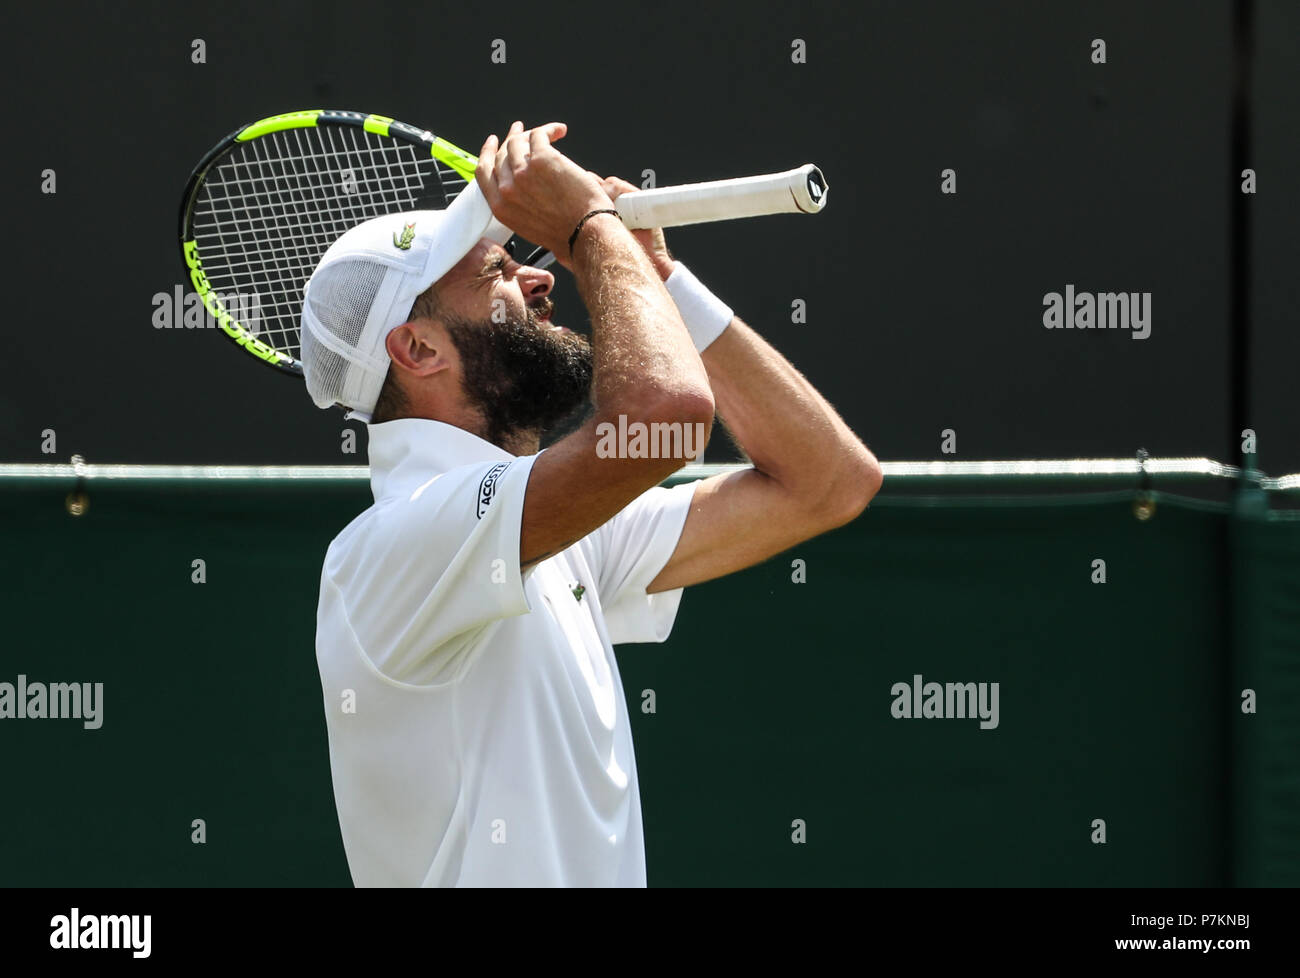 London, UK. 7th July 2018. Benoit Paire of France reacts during the men's singles third round match against Juan Martin Del Potro of Argentina at the Wimbledon Championships 2018 in London, Britain, July 7, 2018. Benoit Paire lost 0-3. (Xinhua/Tang Shi) Credit: Xinhua/Alamy Live News  Stock Photo